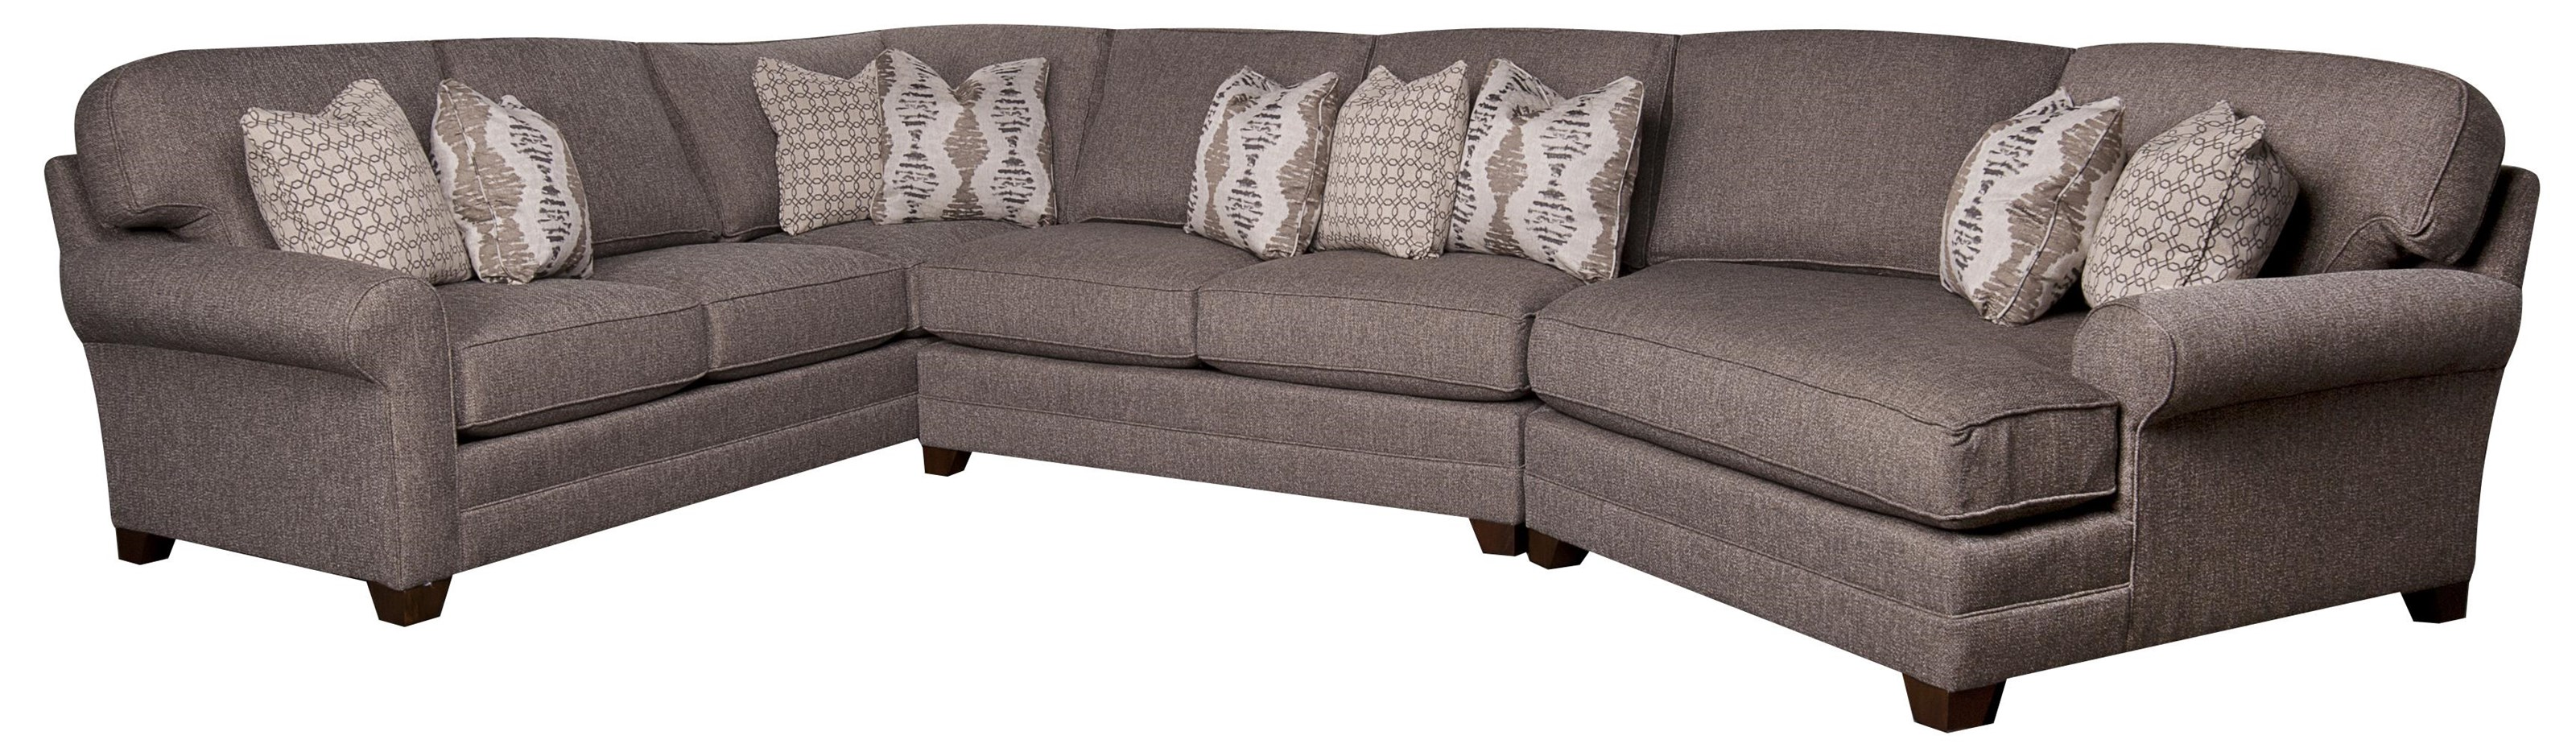 Mcgraw Mcgraw Sectional Sofa by King Hickory at Morris Home